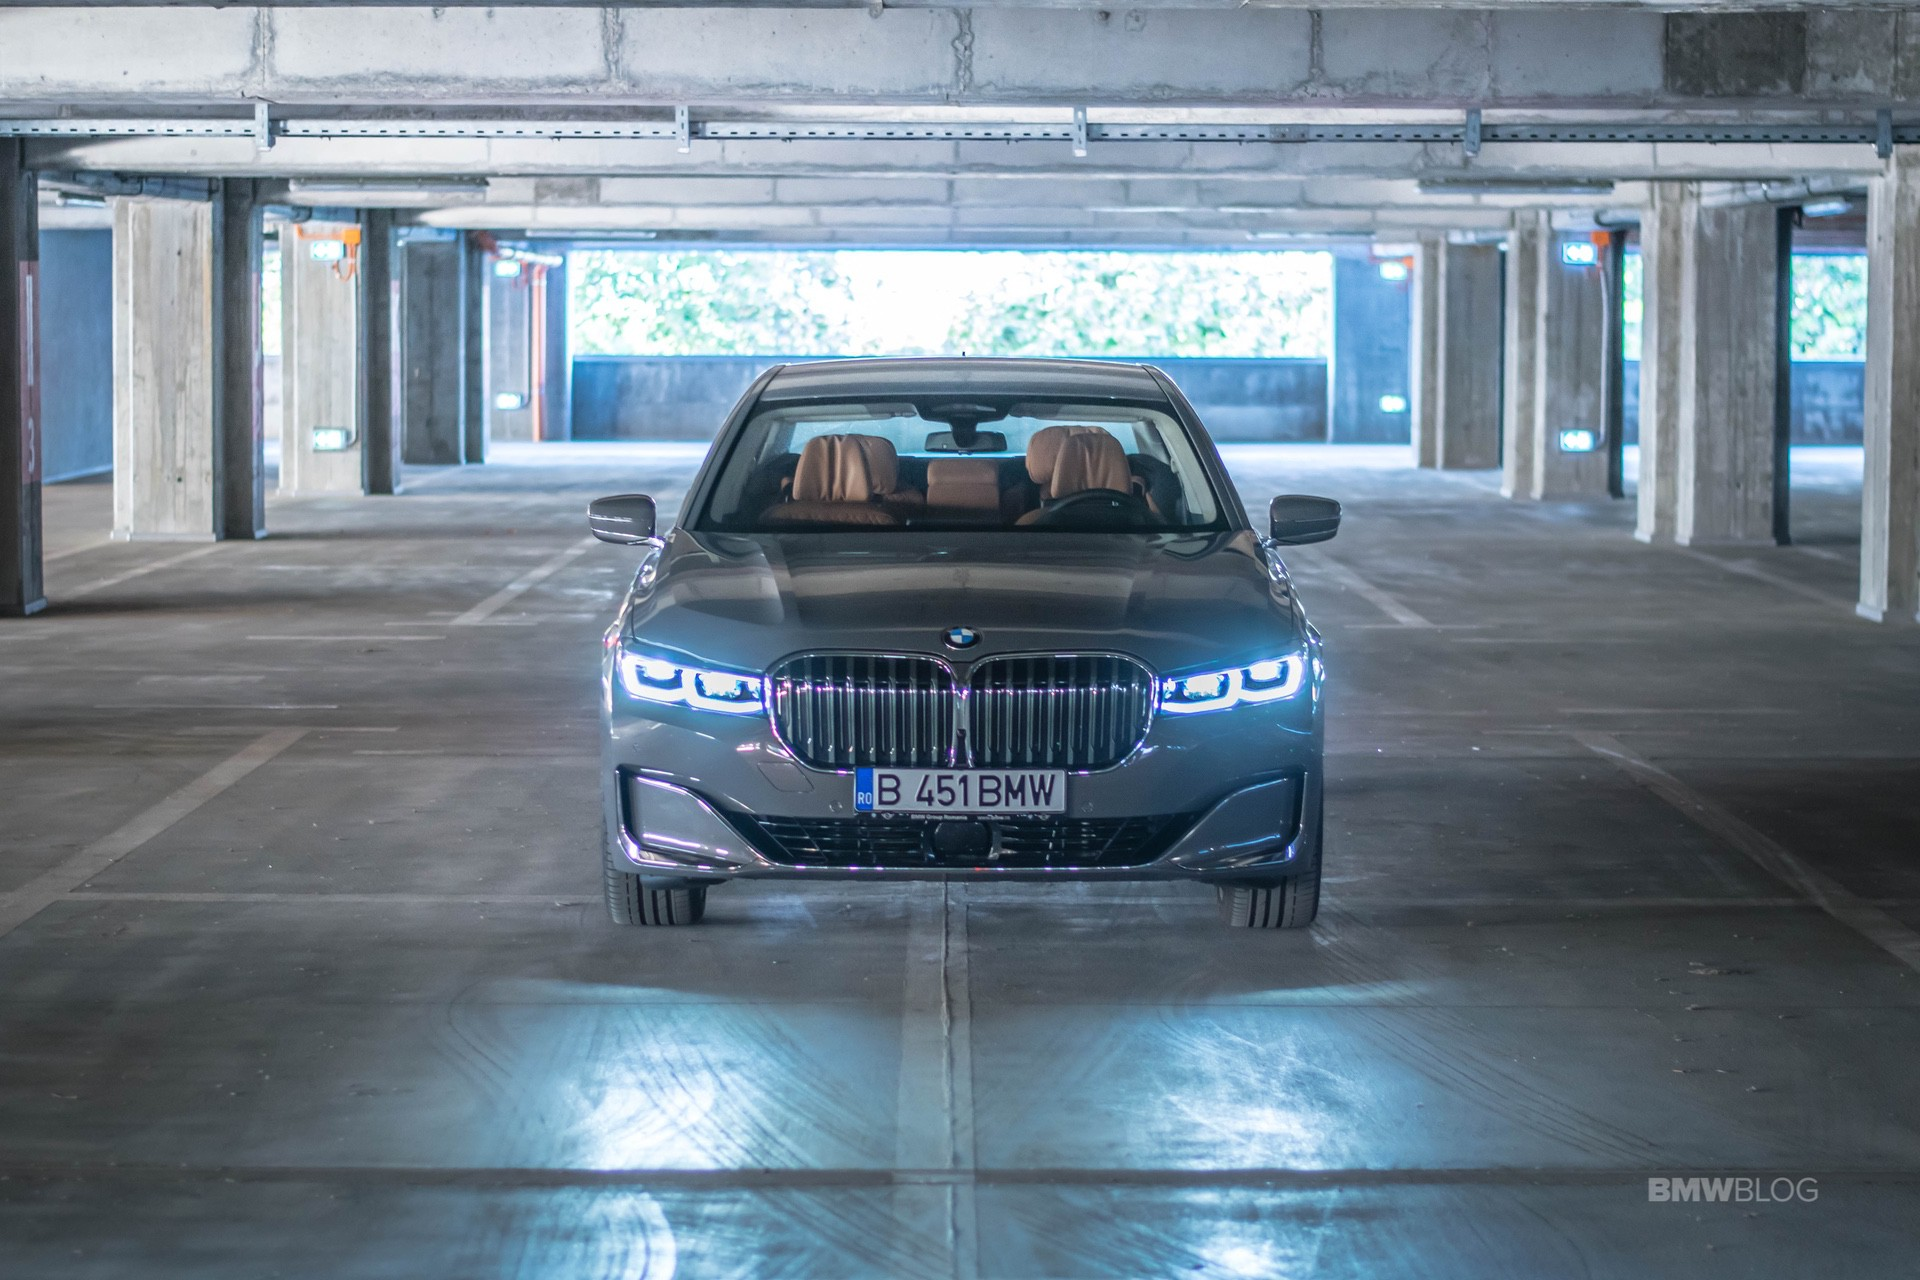 TEST DRIVE: 2019 BMW 745e – Straight Six For The Win